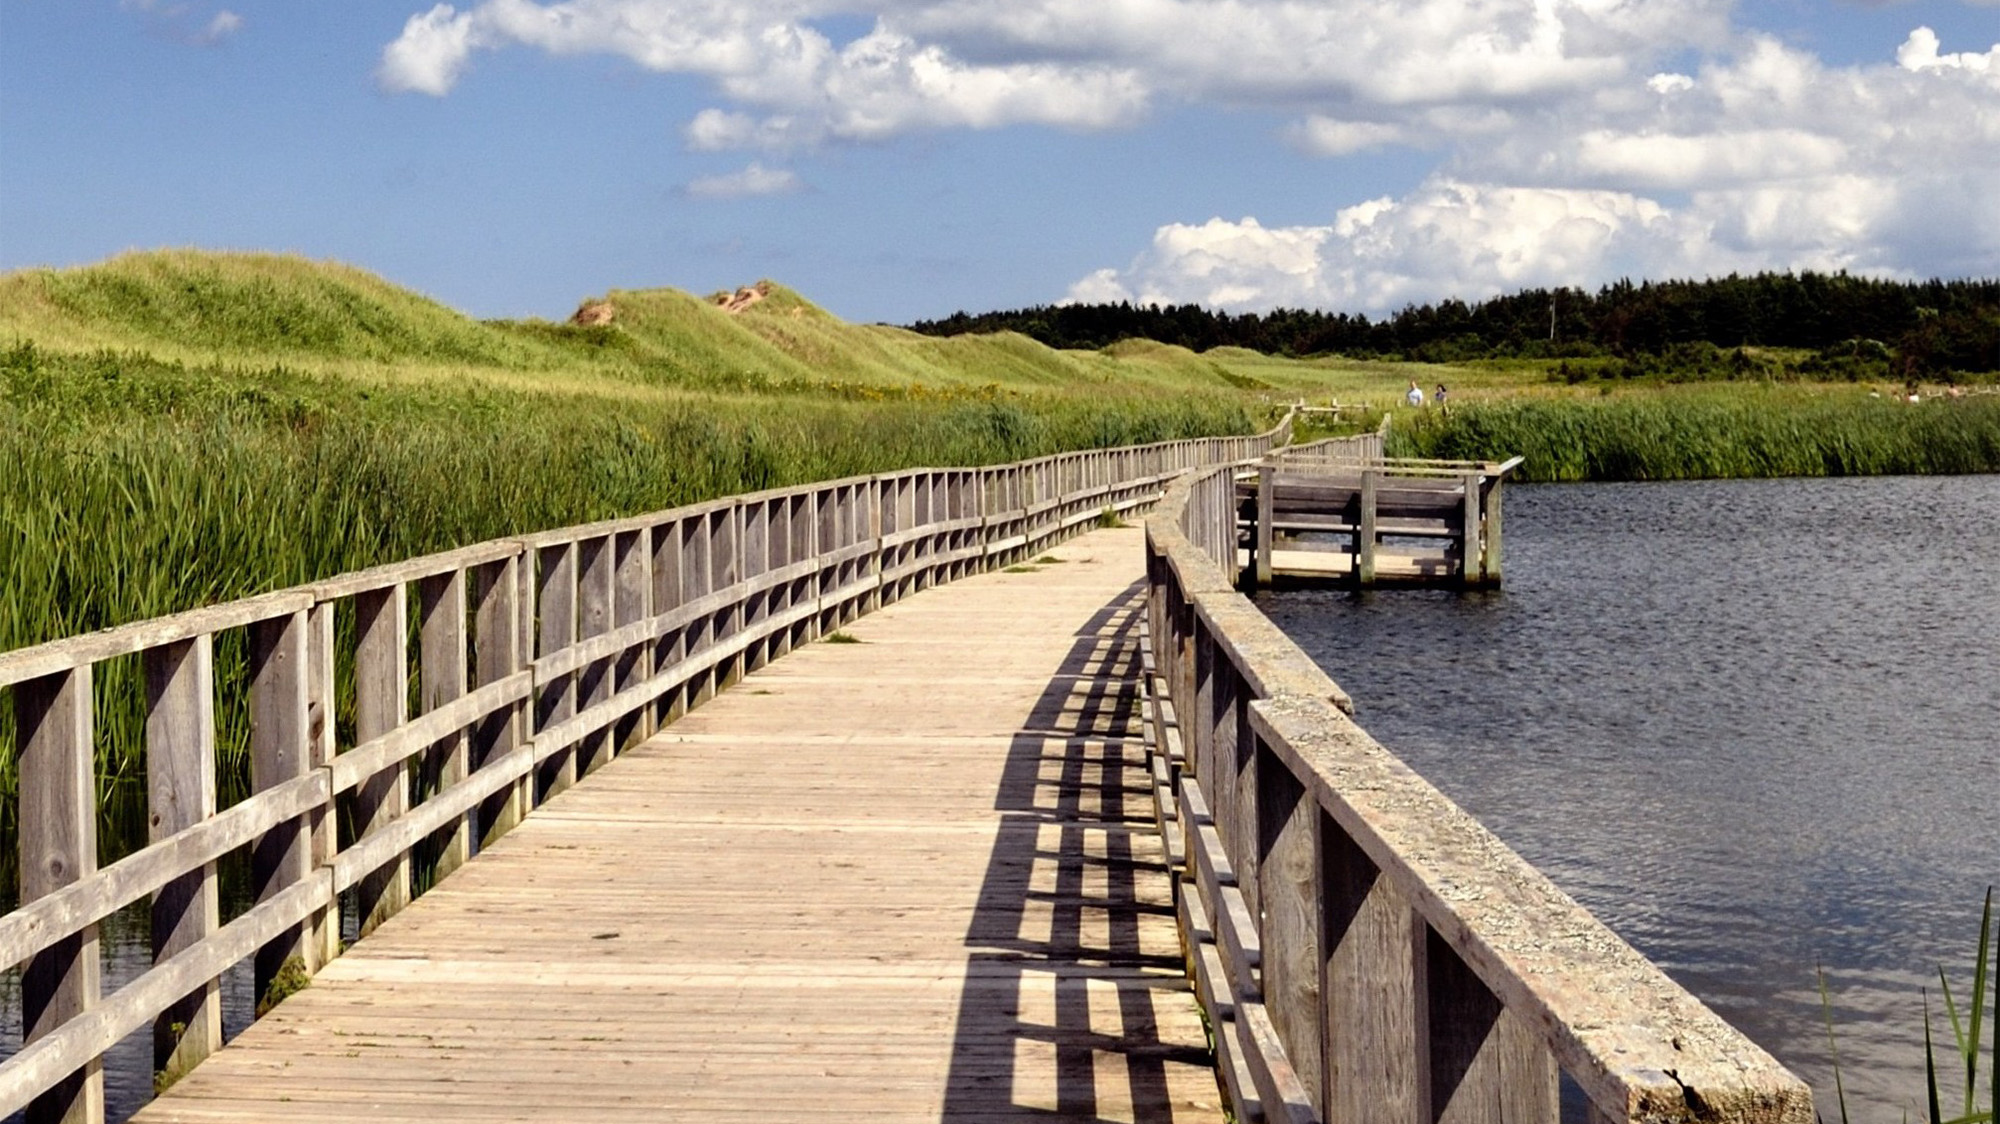 boardwalk stretching over the water alongside grassy fields